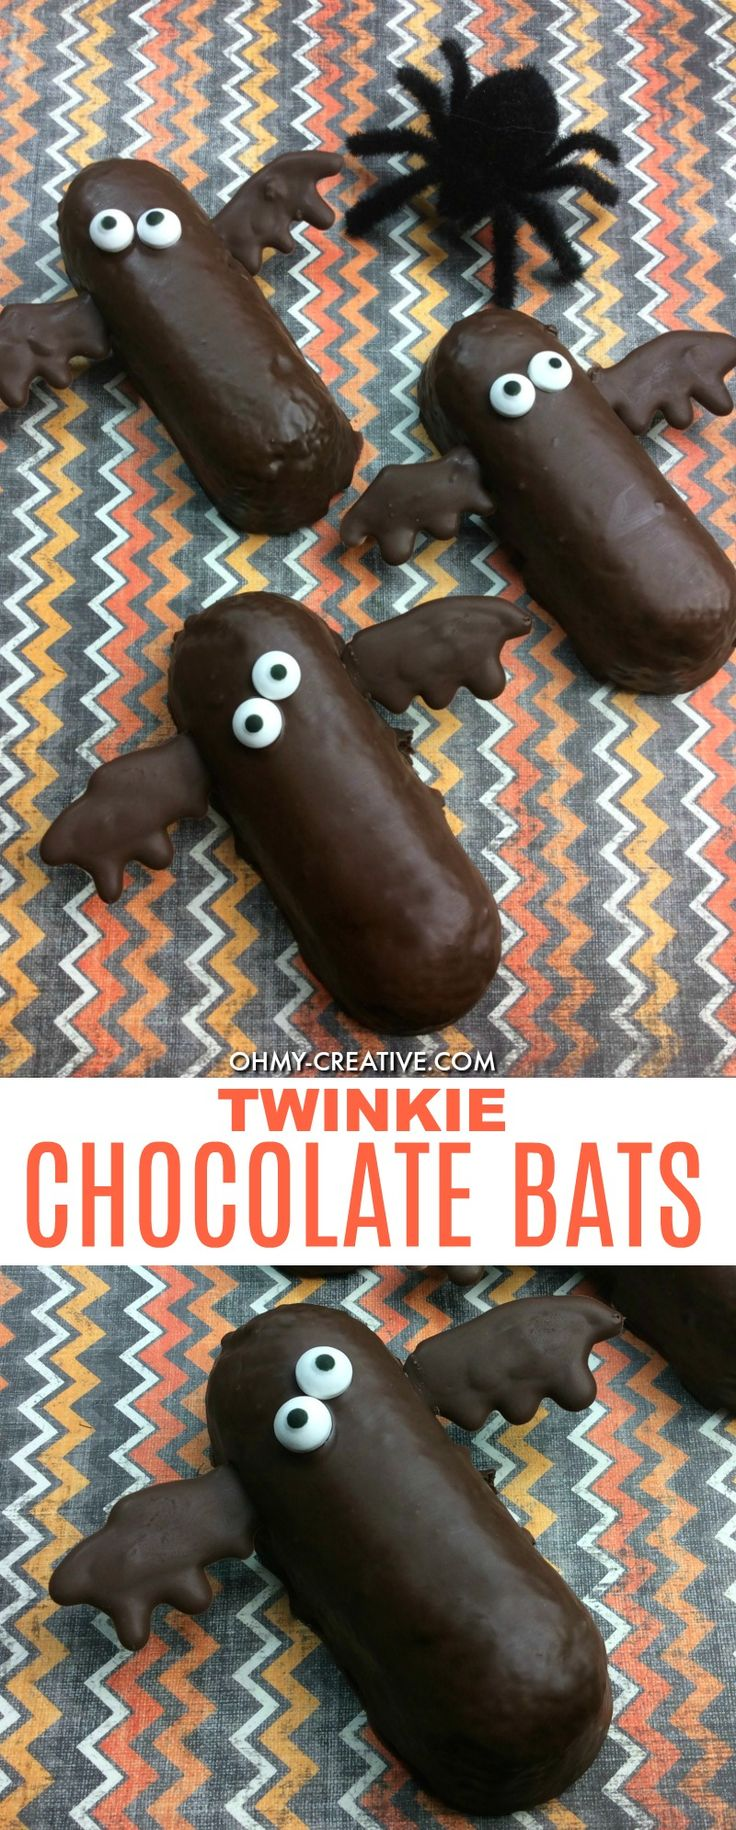 Halloween Twinkie Chocolate Bats | OHMY-CREATIVE.COM |. I would make the melting chocolate wings first, refrigerate while coating the Twinkie in the rest of the melting chocolate. Then stick the hardened wings & eyes into the just dipped Twinkie and refrigerate.